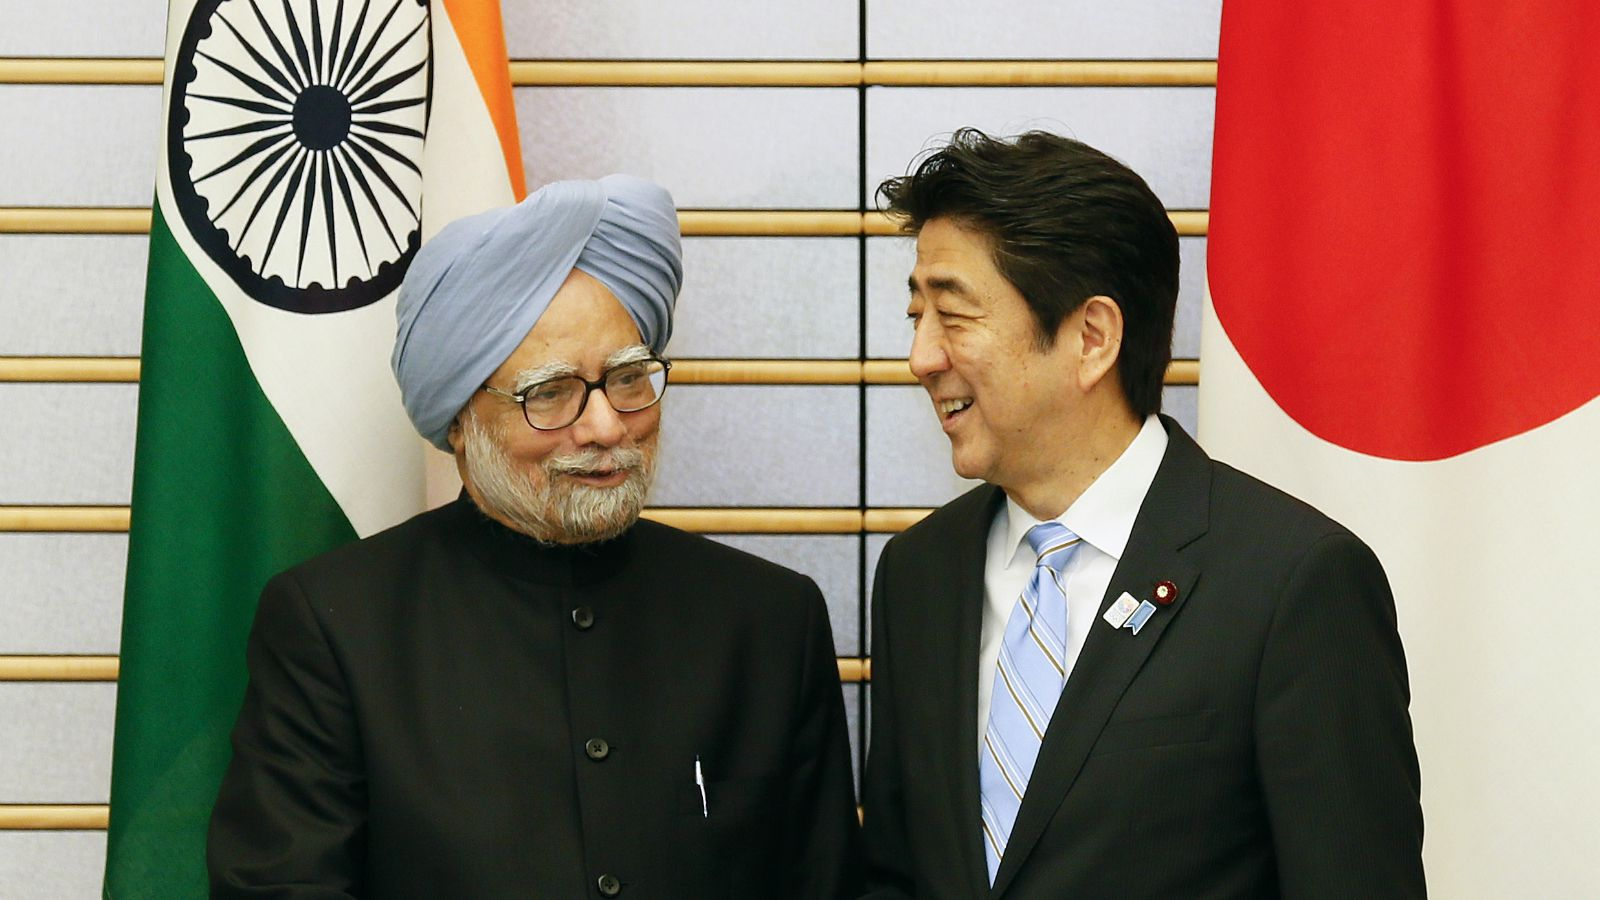 Indian Prime Minister Manmohan Singh, left, shakes hands with his Japanese counterpart Shinzo Abe at the start of talks at the latter's official residence in Tokyo, Wednesday, May 29, 2013.